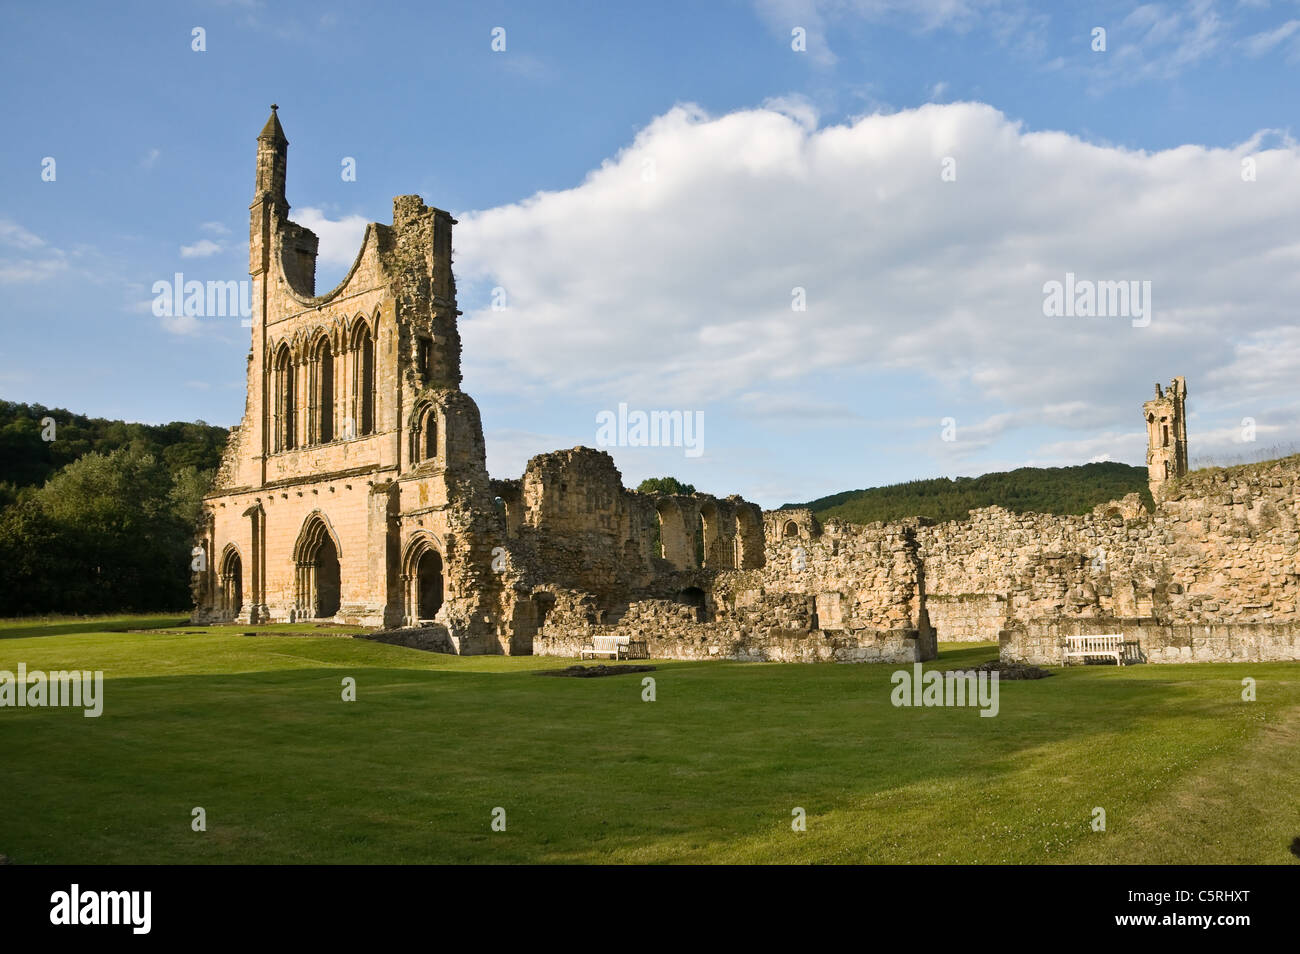 Byland Abbey, North Yorkshire. Showing the west wall of the abbey in the evening sunlight. - Stock Image